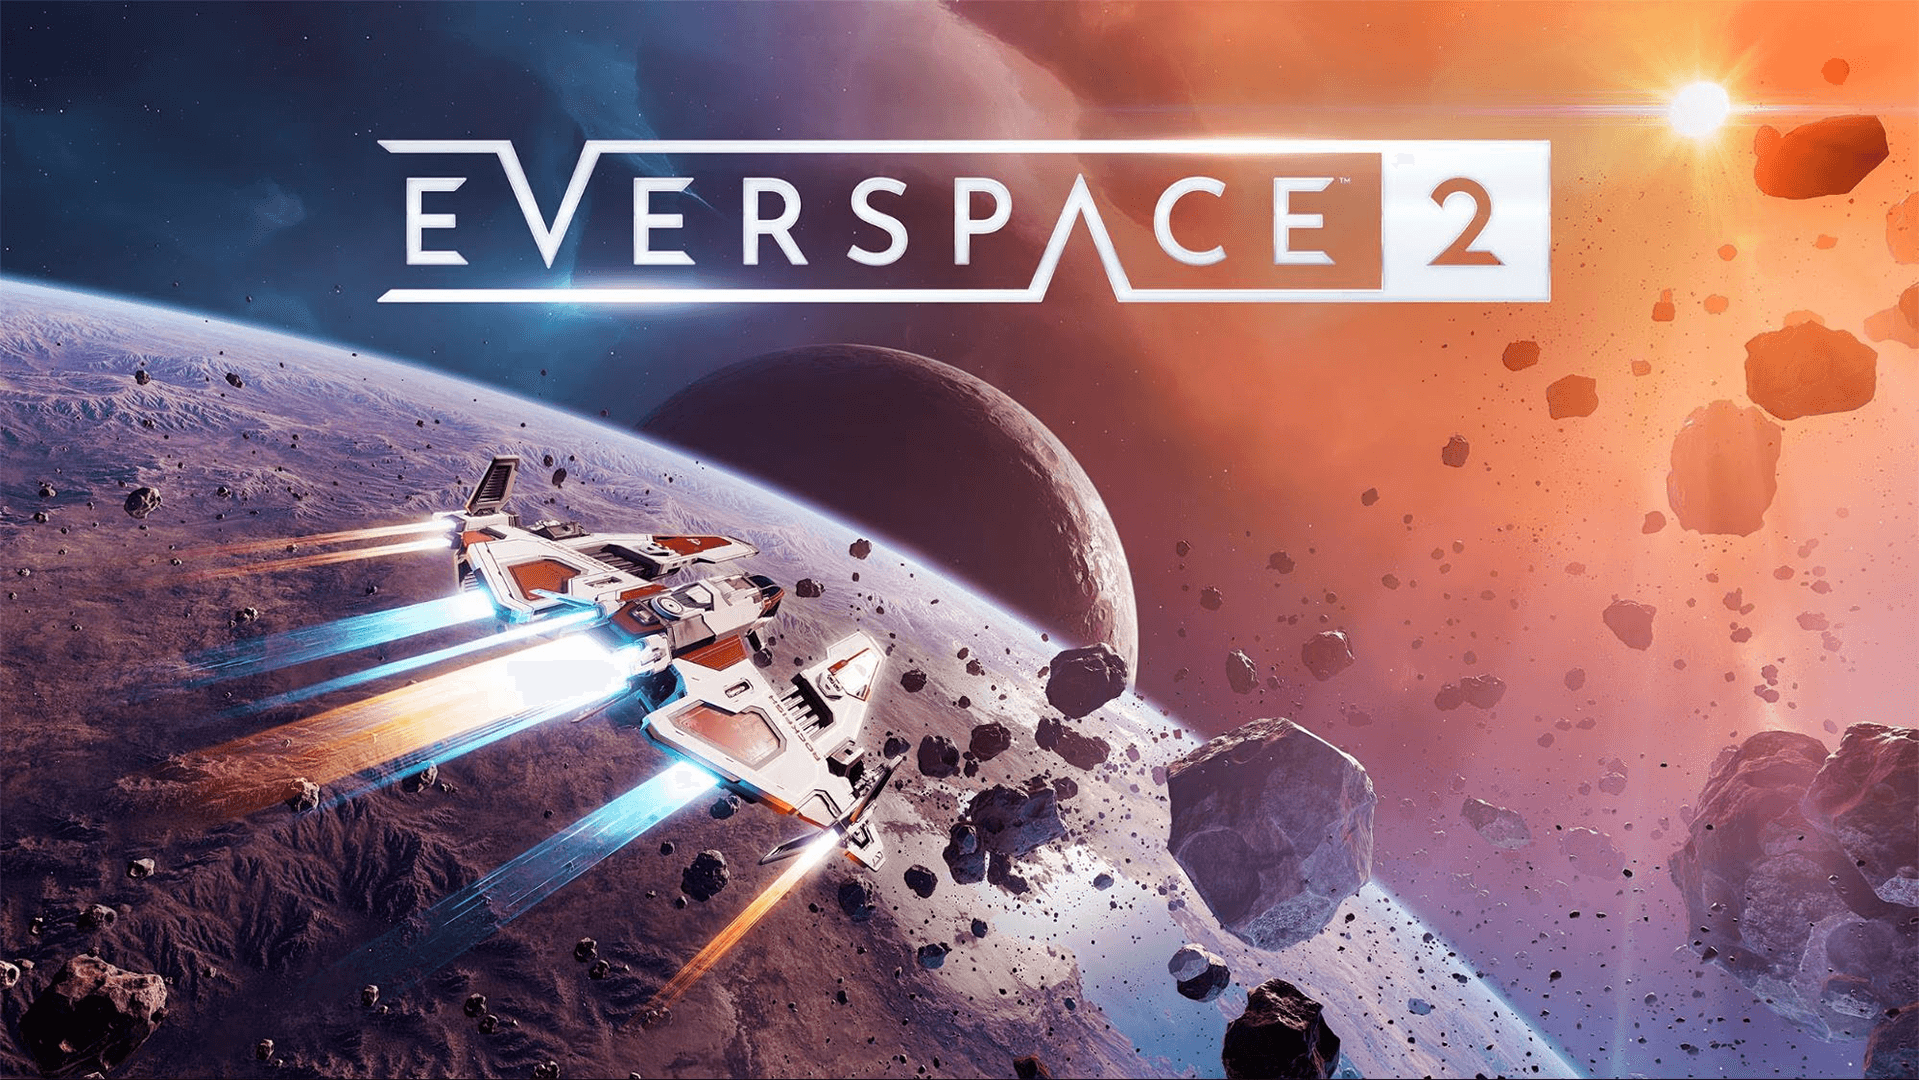 Everspace 2 Early Access: Now Available on Steam!